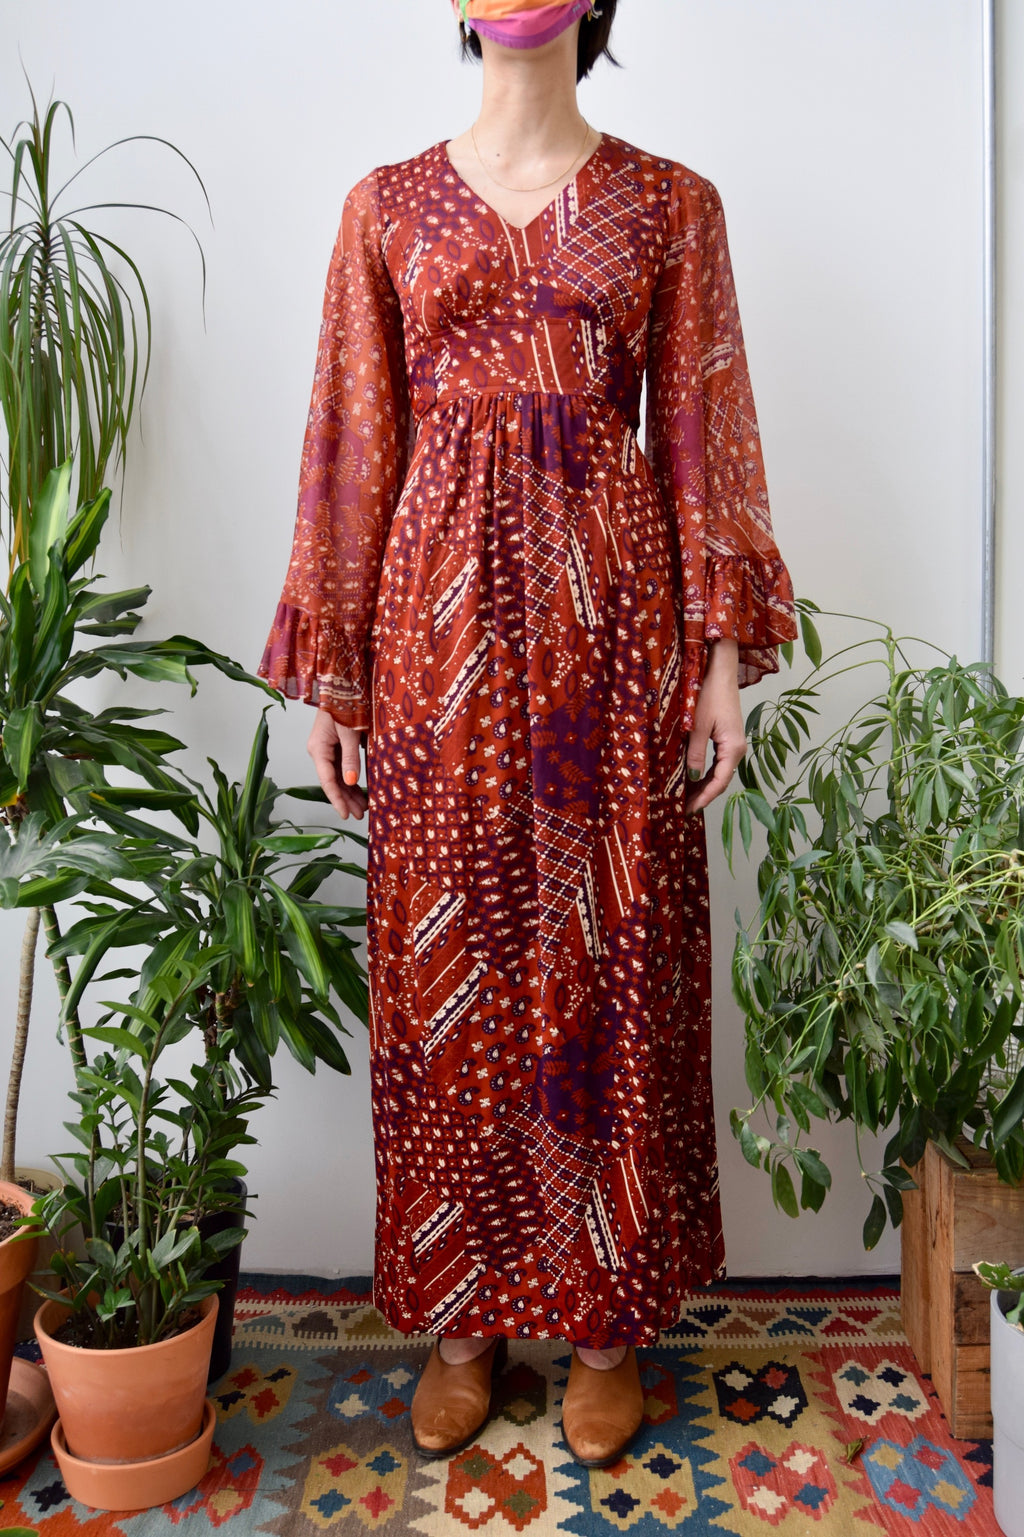 Seventies Sienna Bell Sleeve Dress